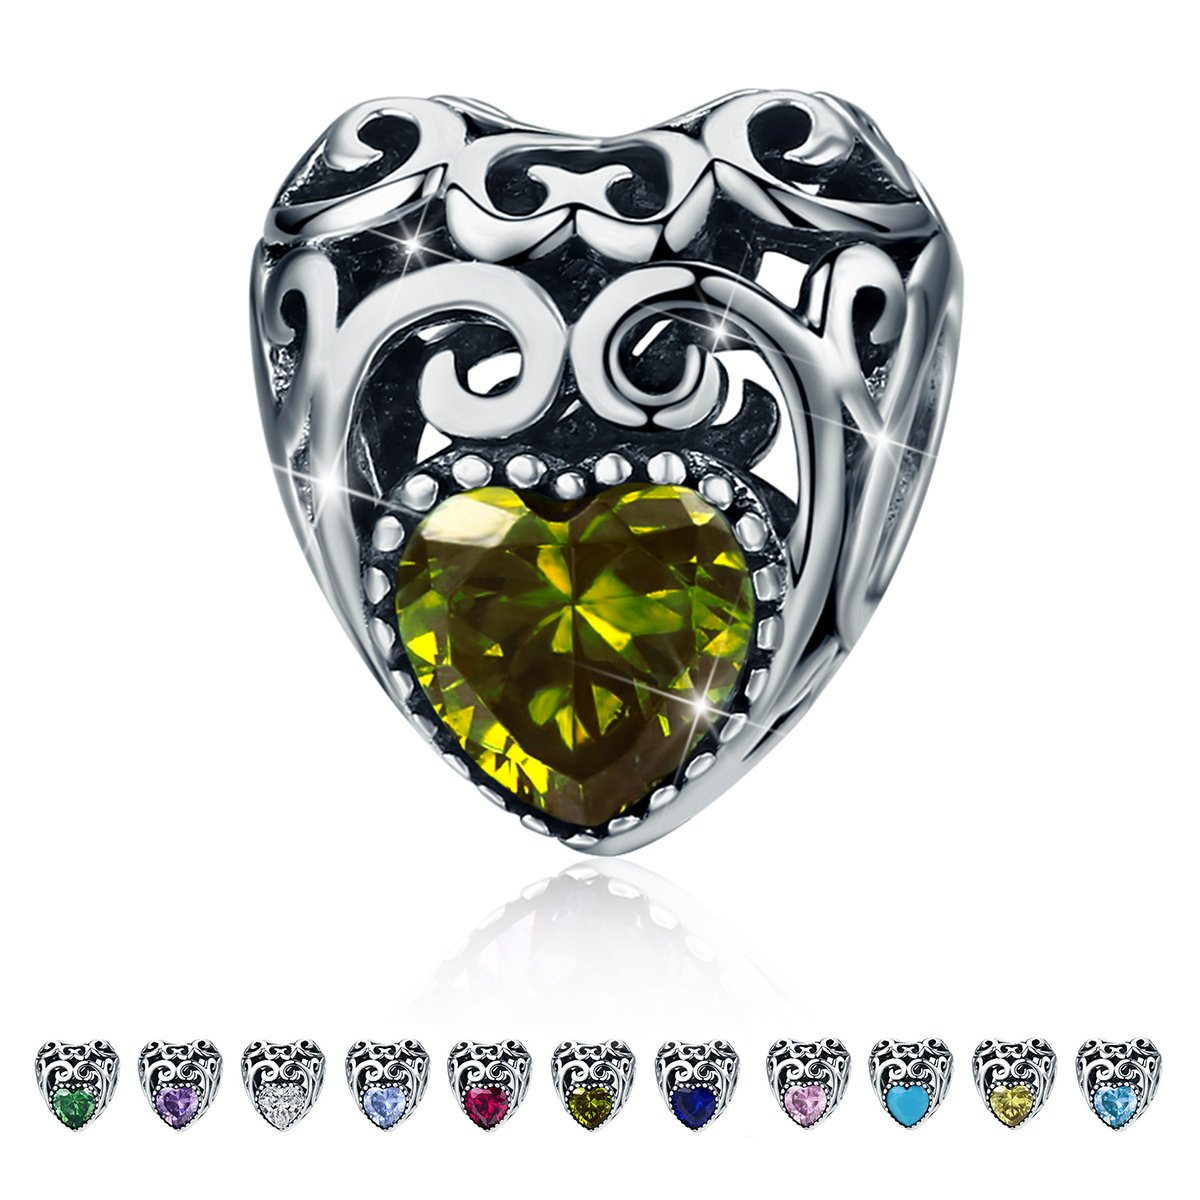 Birthstone Charms- Leaves Wave Heart Bead Charms- 925 Sterling Silver Openwork Charm fit Pandora Charm Bracelet Necklace for Women, Daughter, Wife, Girlfriend, Mother BJ09015 (August)